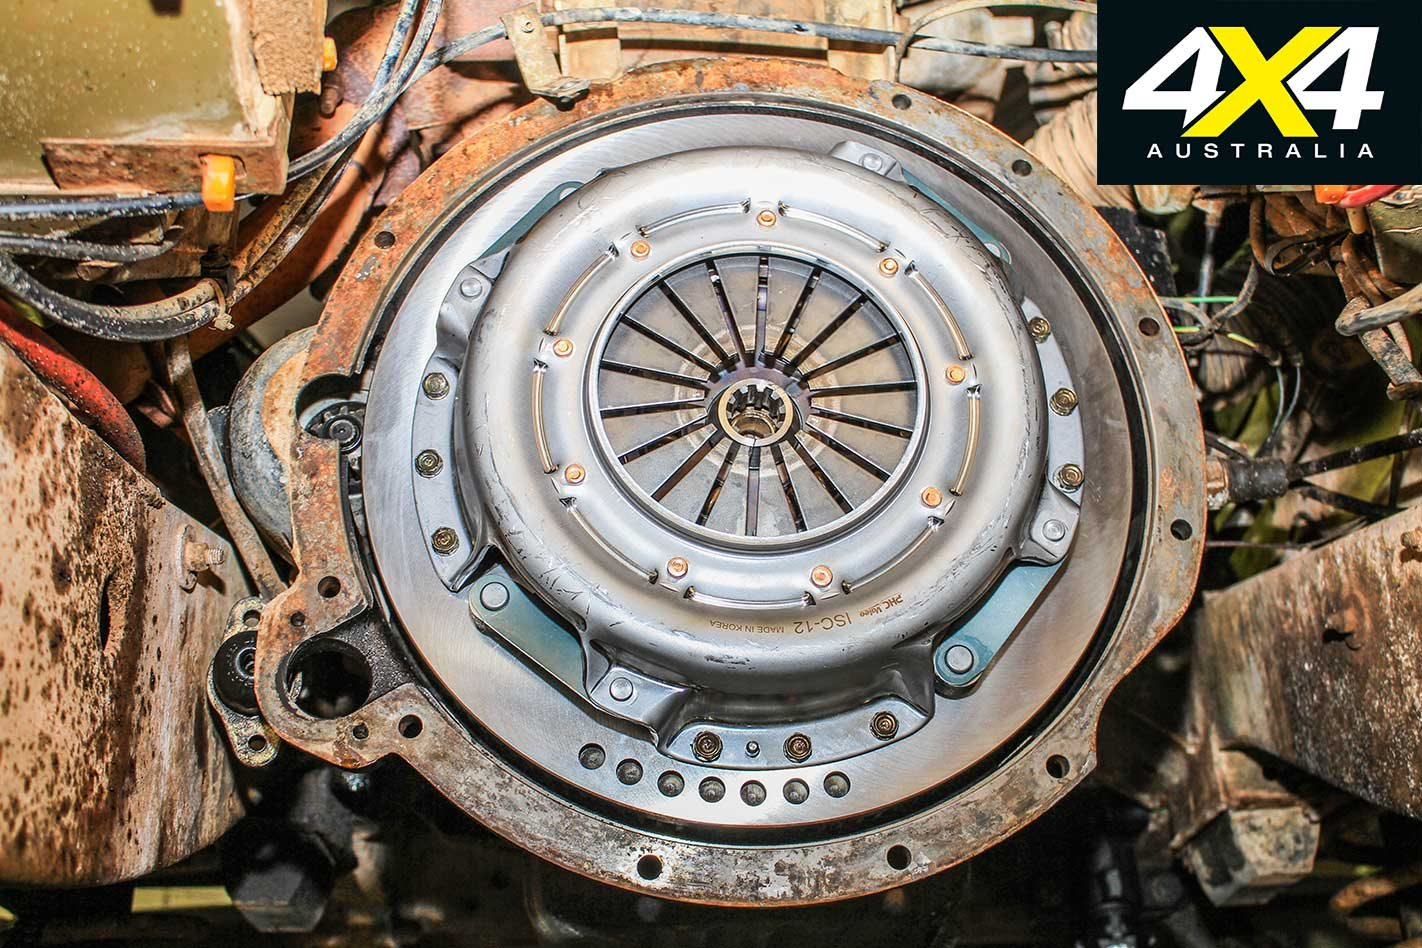 1988 Land Rover Perentie Defender 110 Long Term Review Part 3 4x4 Shed Clutch